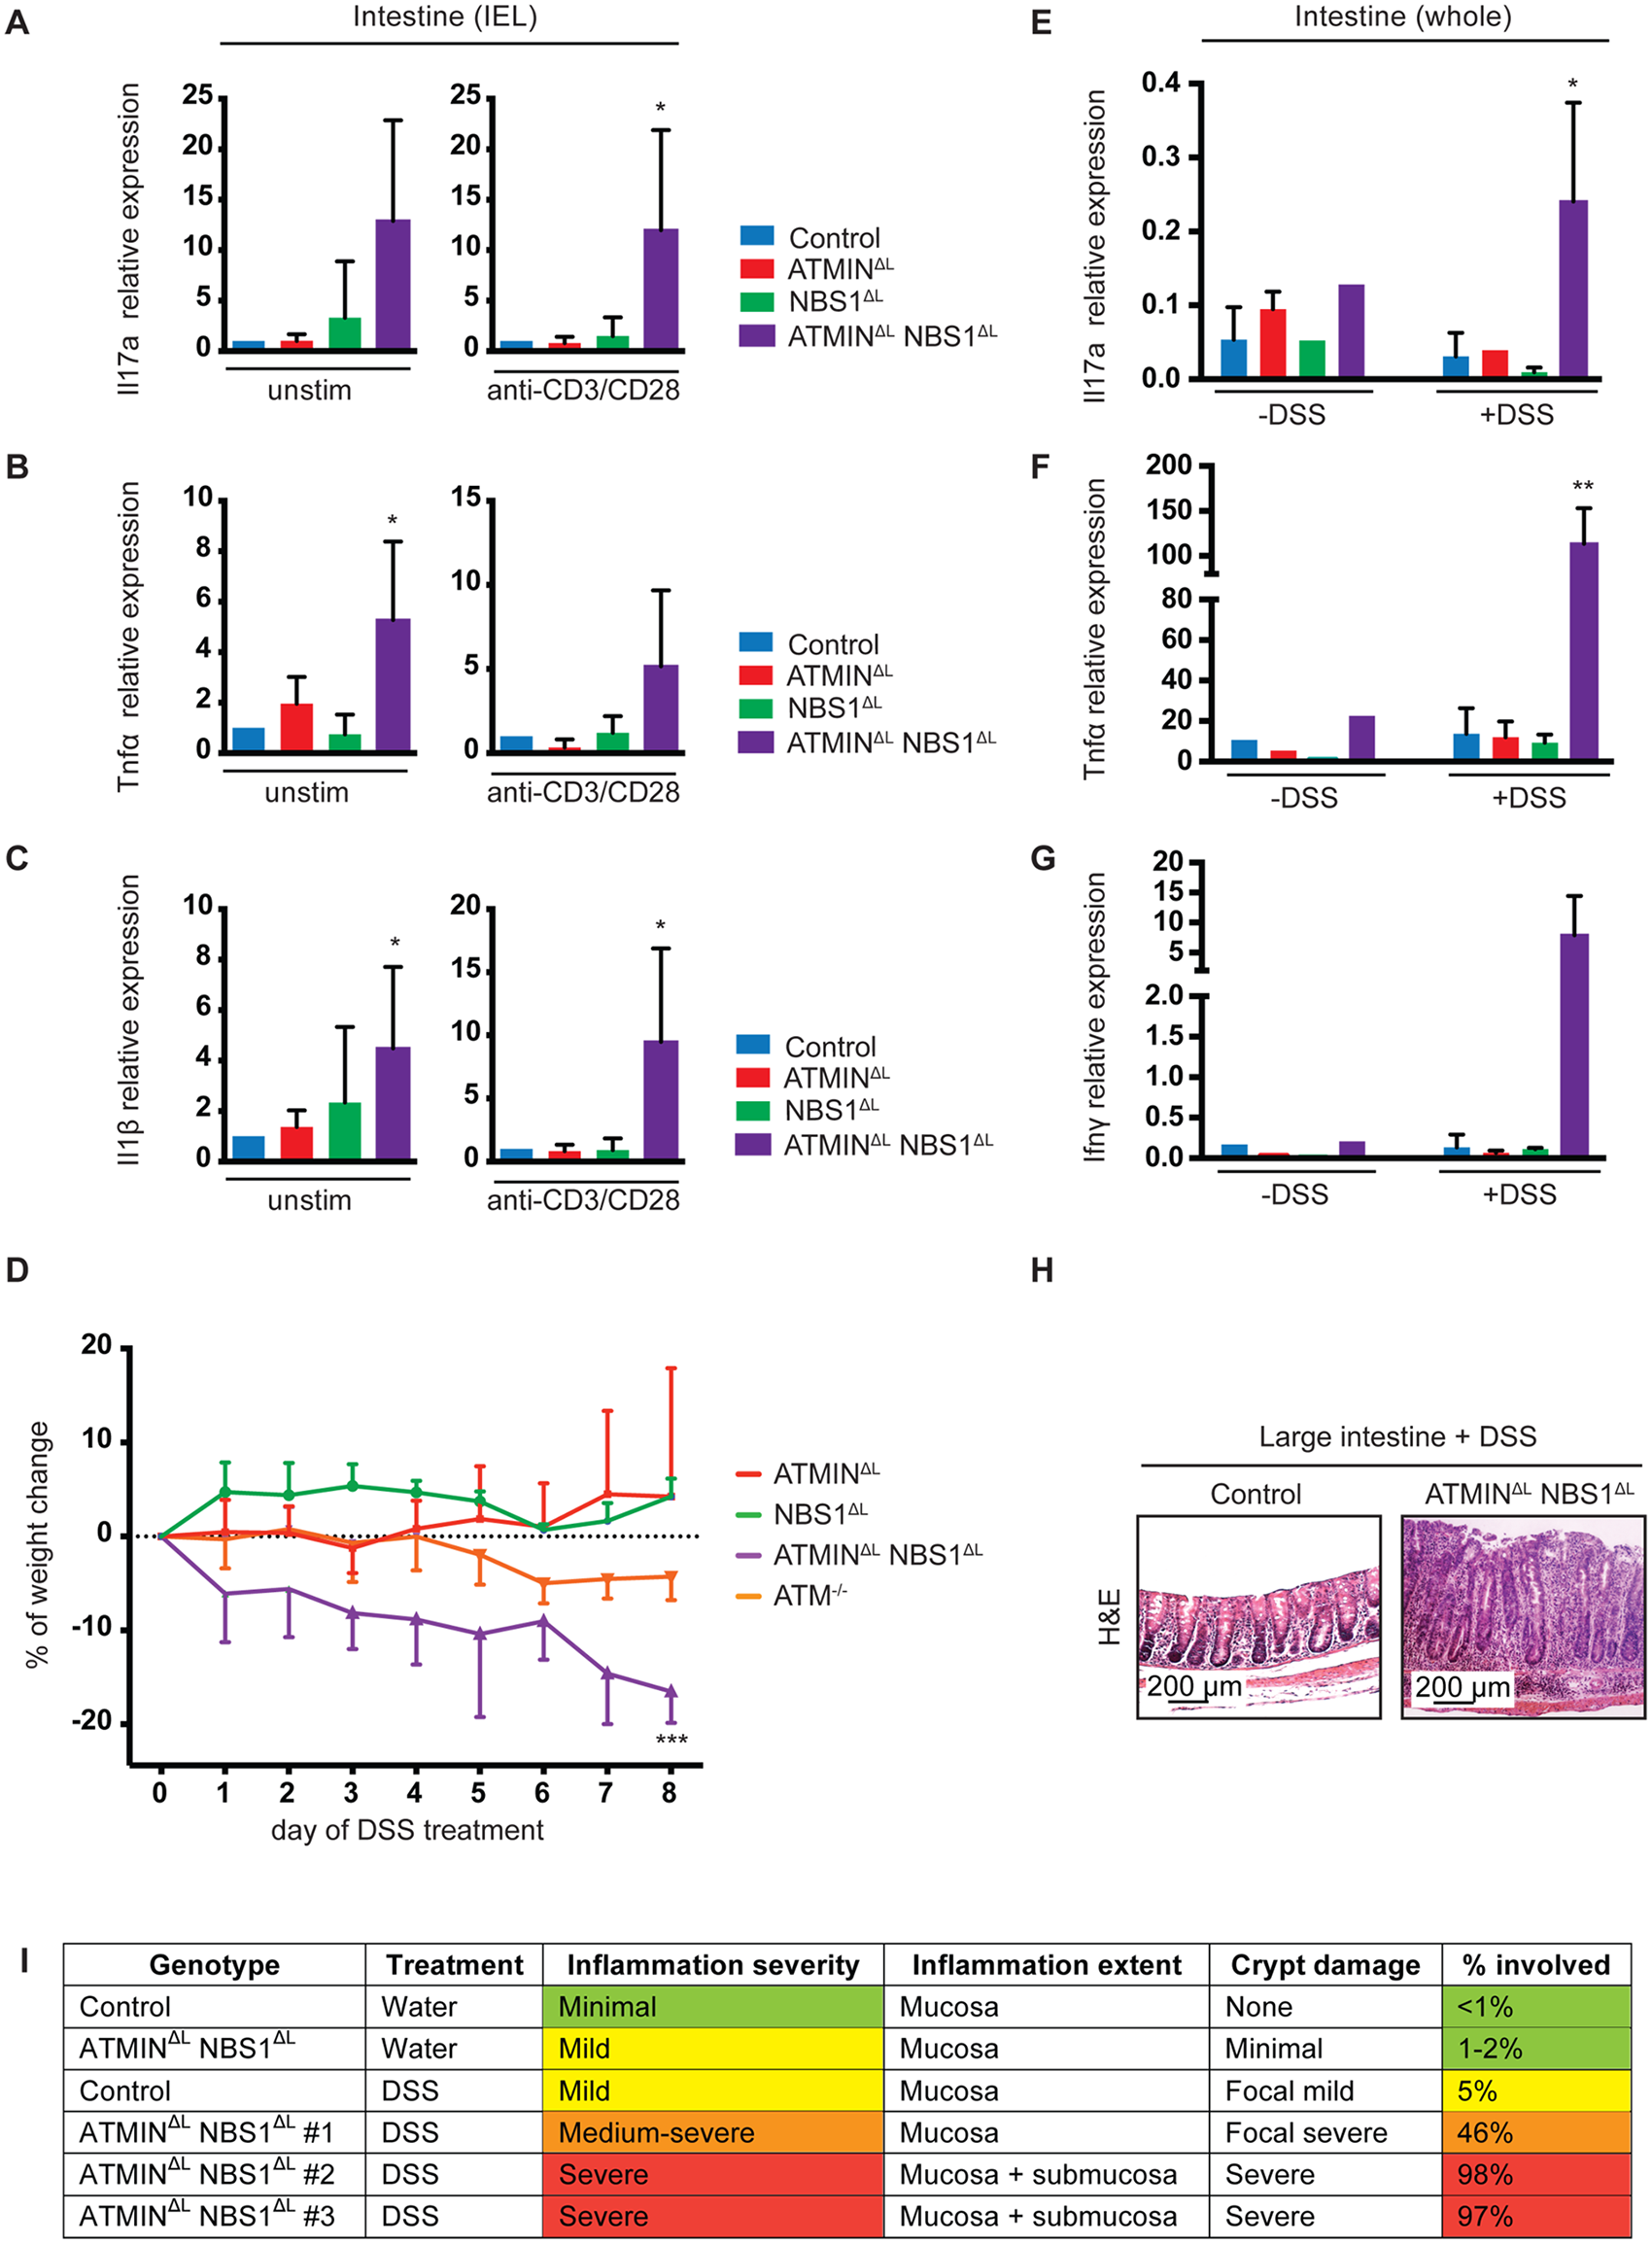 Mice deficient for ATMIN and NBS1 in T cells produce inflammatory cytokines in the intestine and are hypersensitive to colitis.